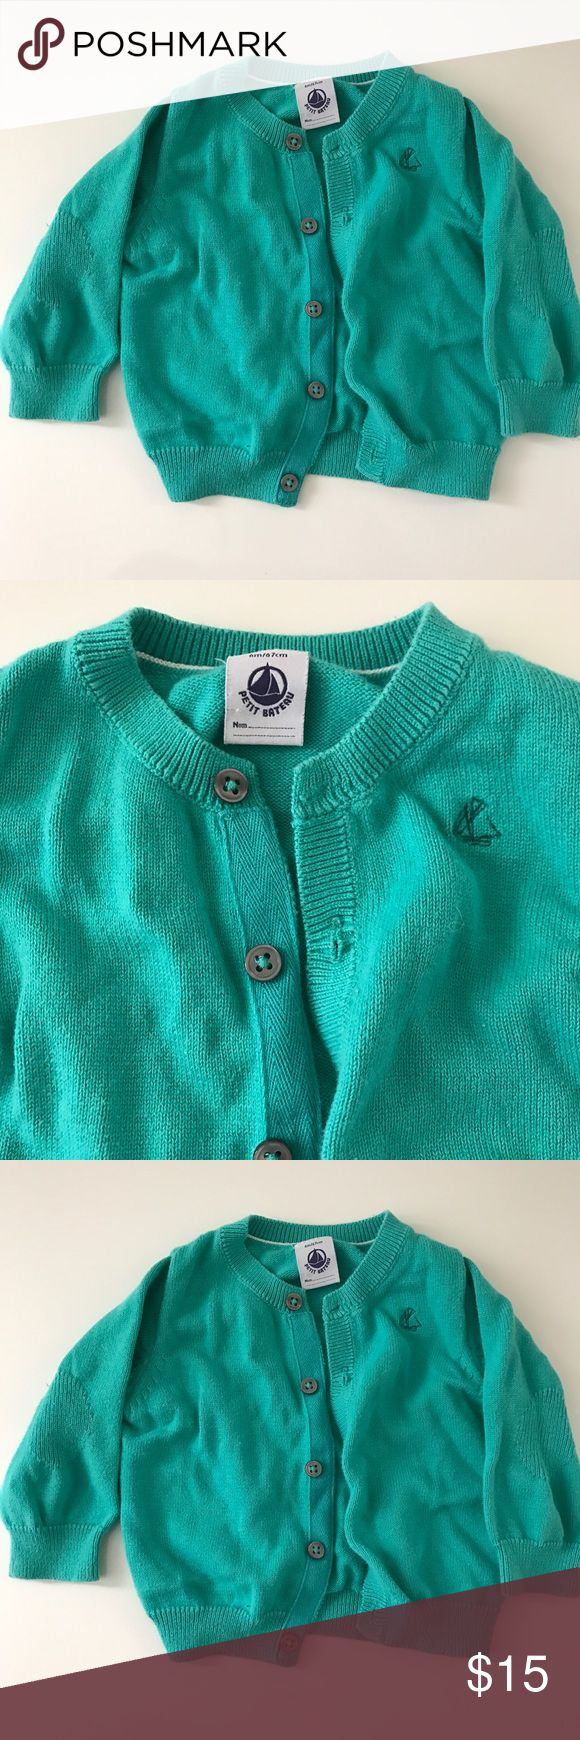 Petit Bateau teal cardigan Petit Bateau teal cardigan with buttons. Size 6 months. Gently used but in great condition. No stains. Petit Bateau Shirts & Tops Sweaters